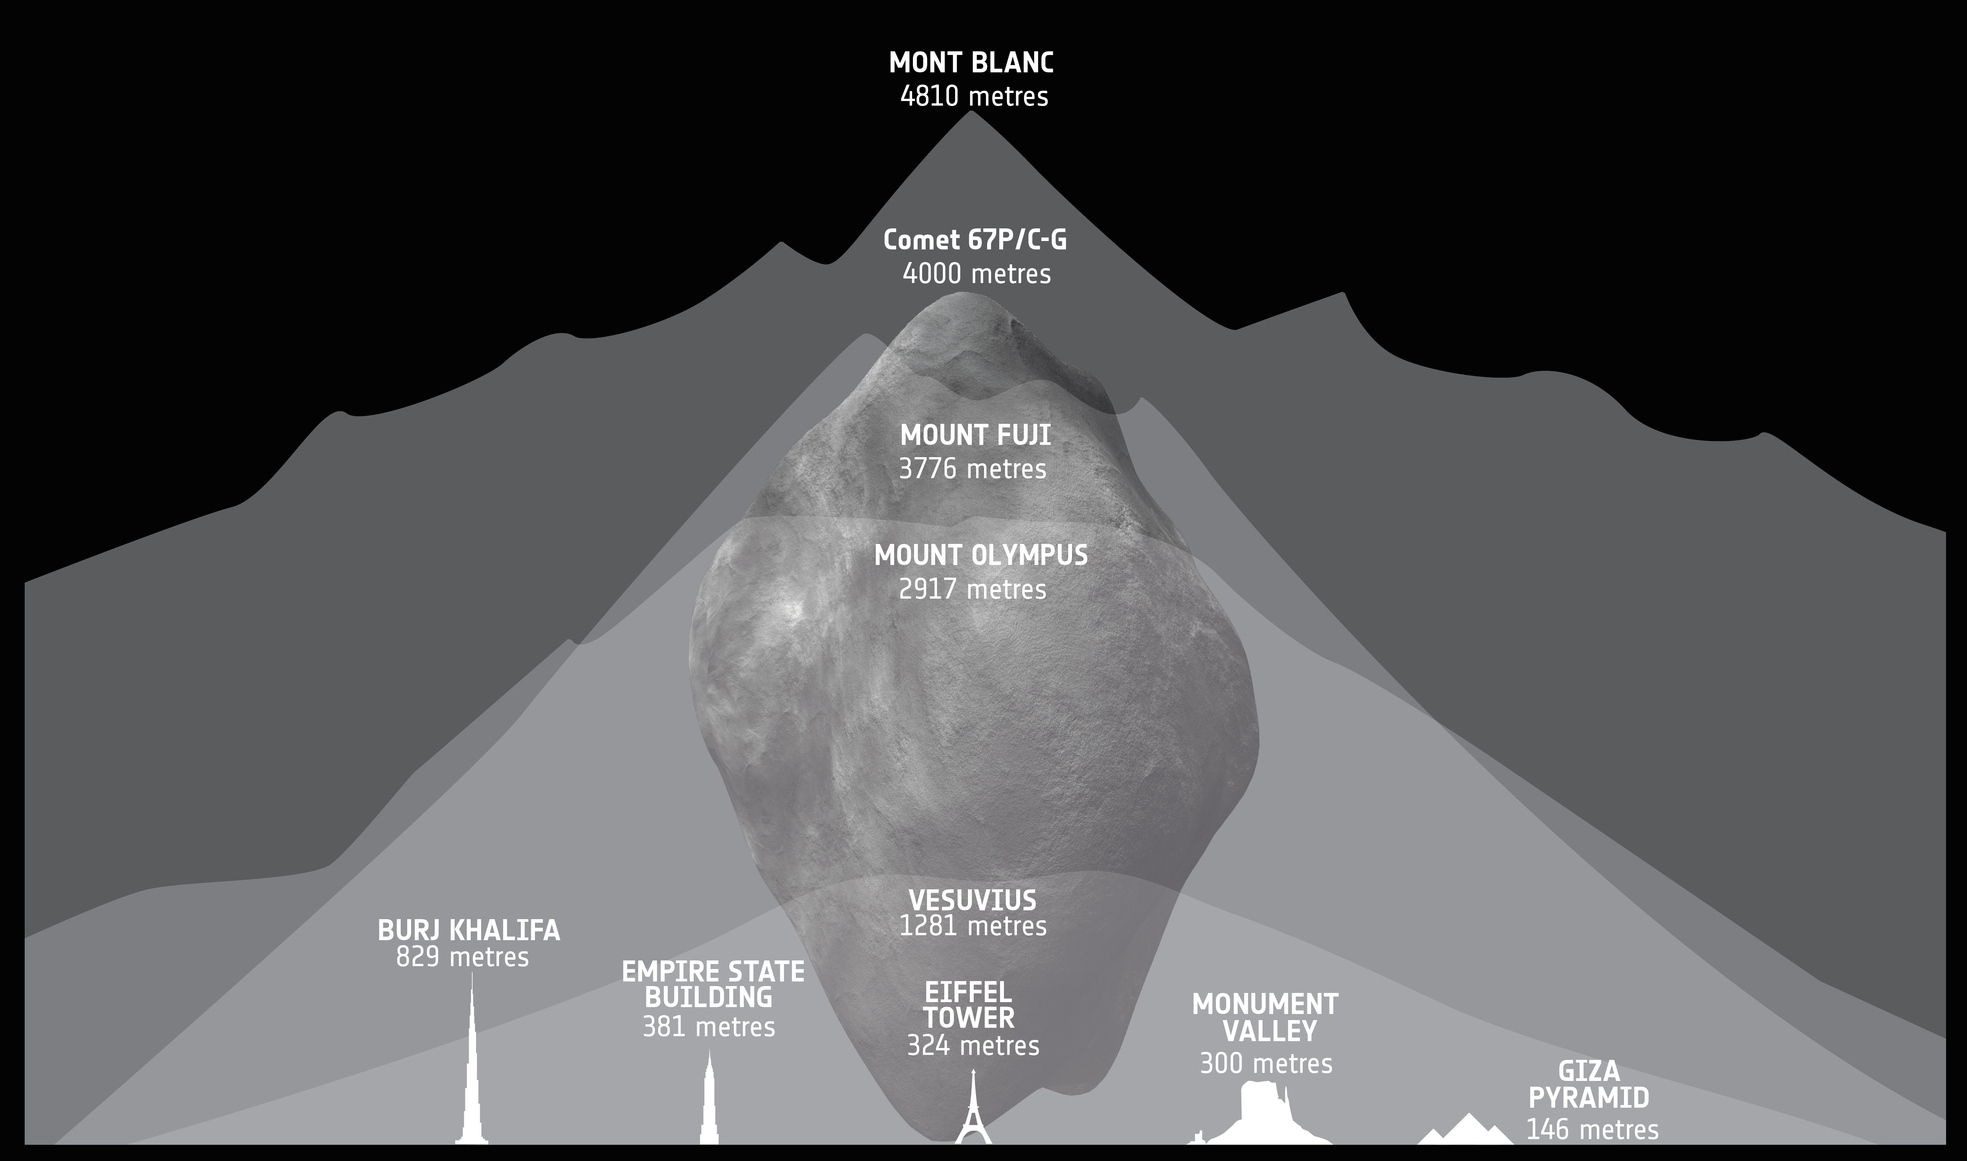 Comet 67P/Churyumov-Gerasimenko compared to mountains